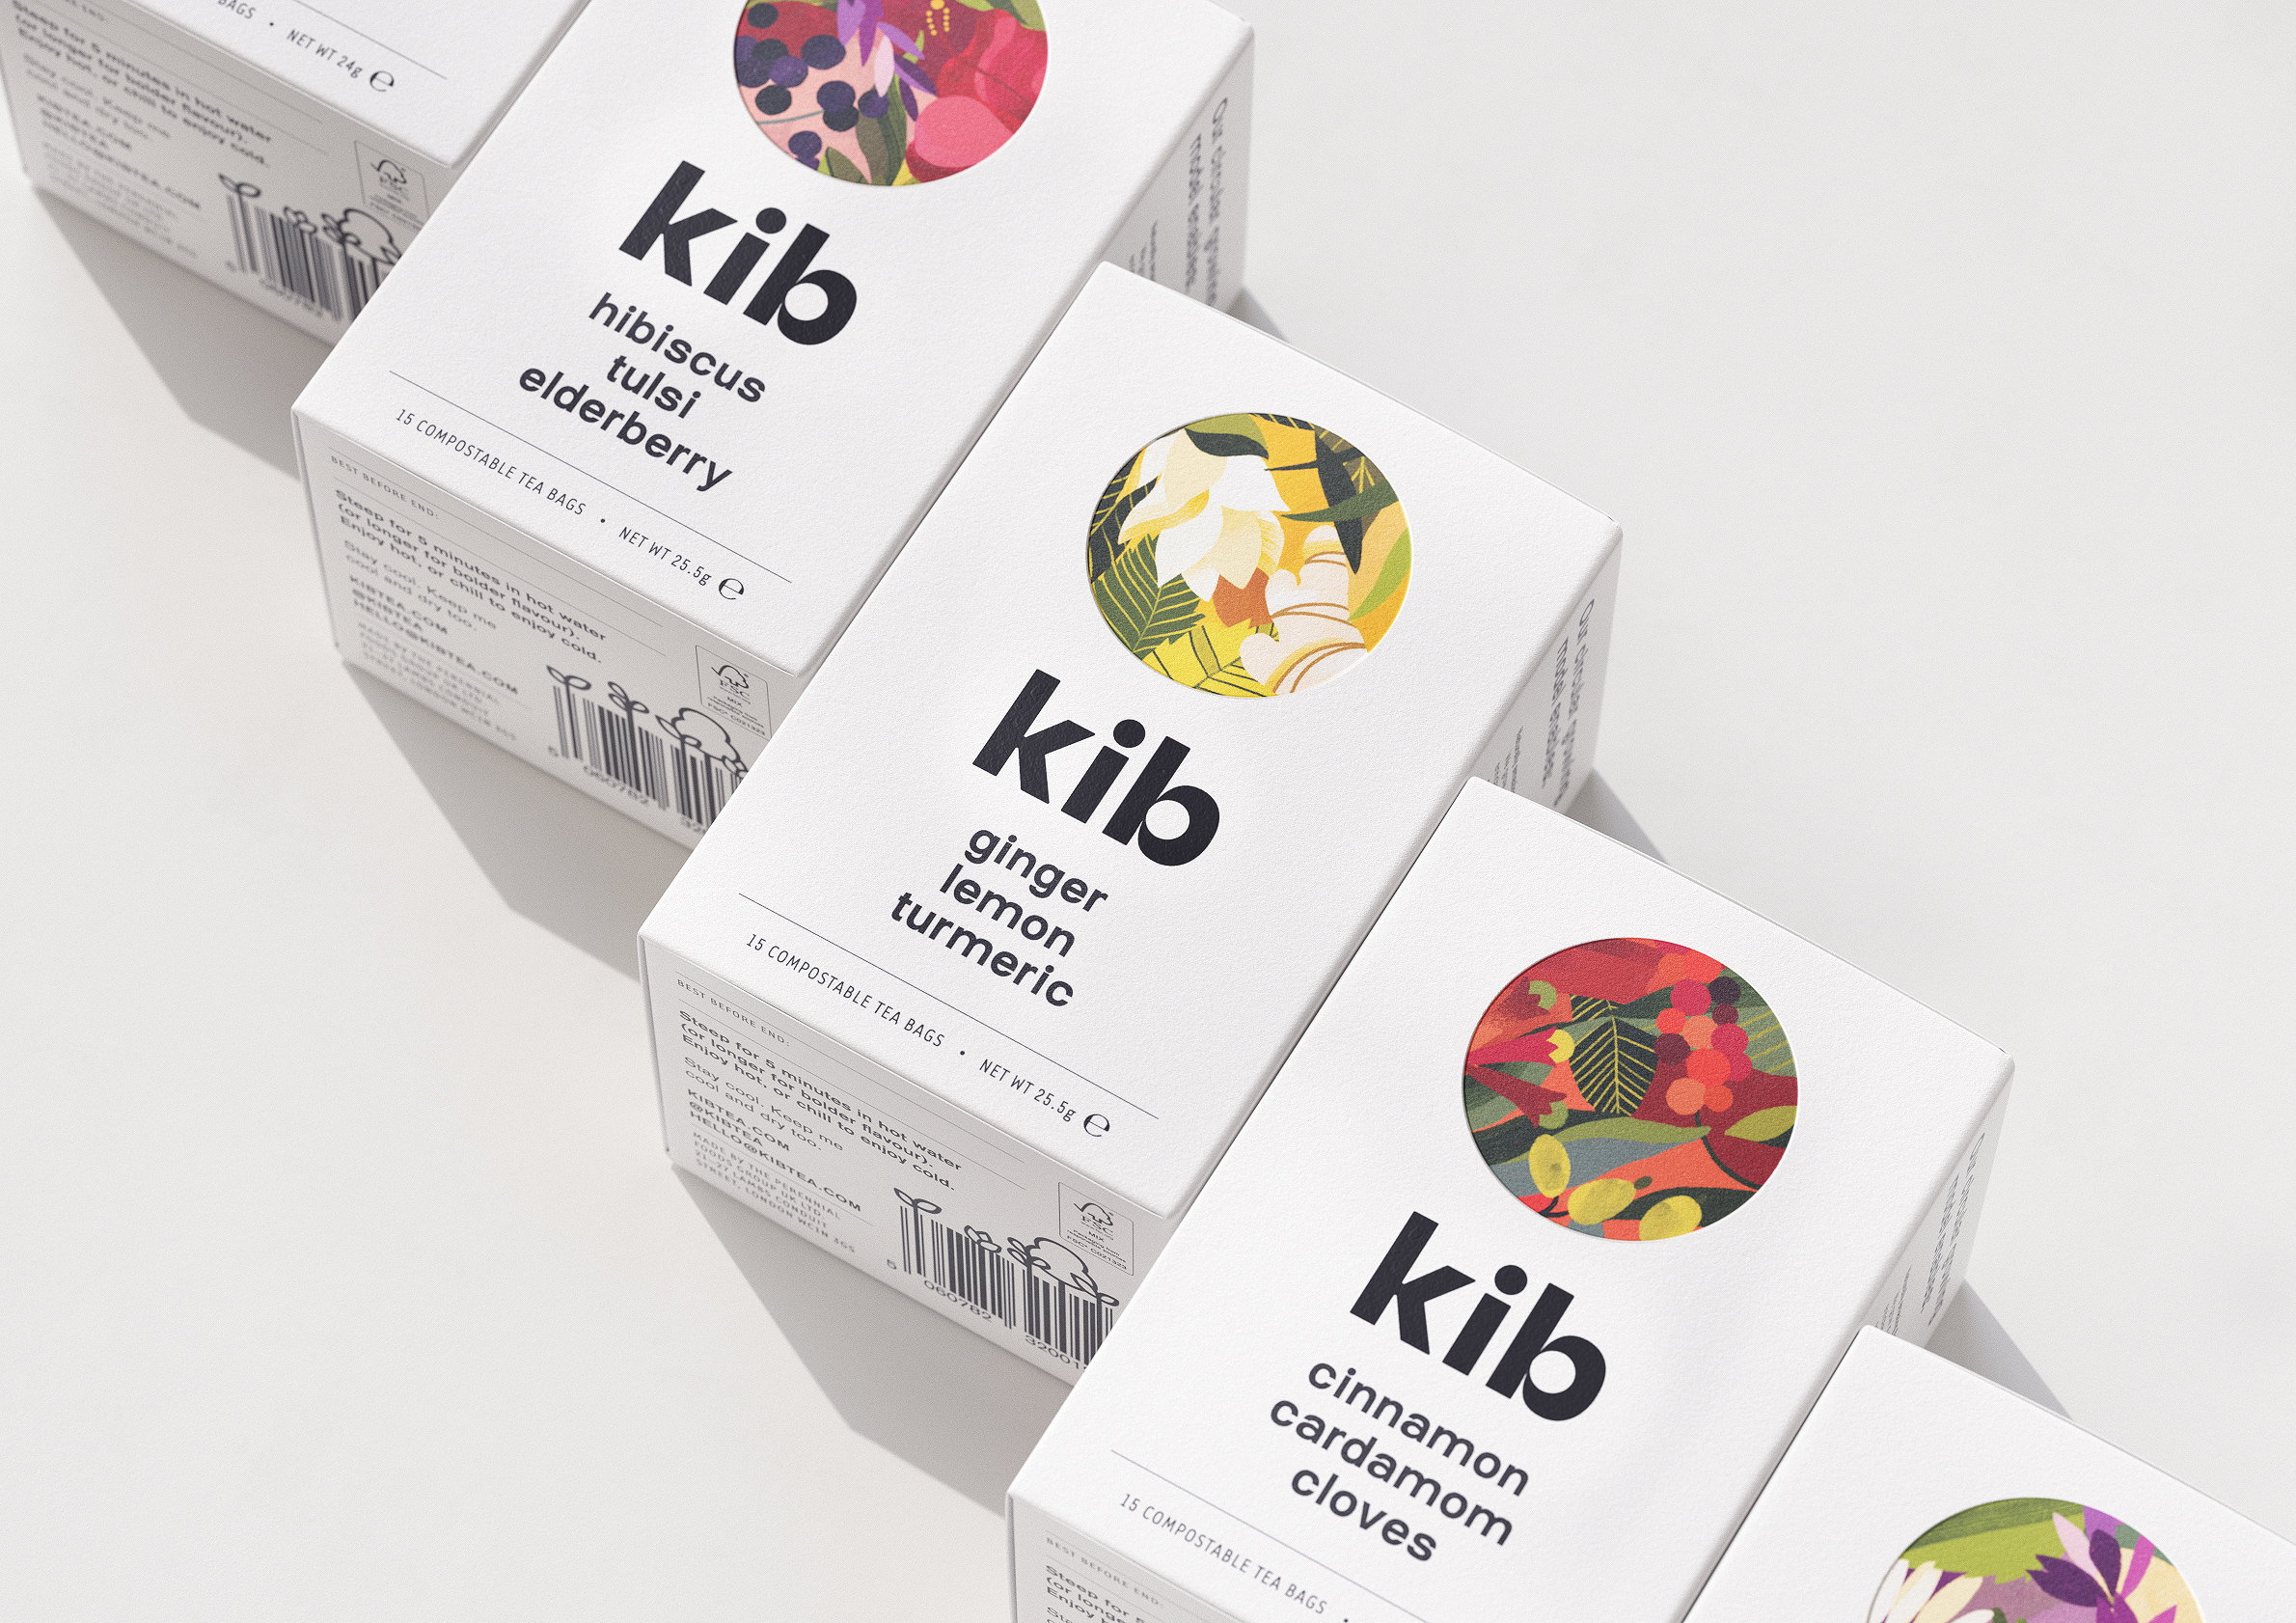 Kib Herbal Tea Range